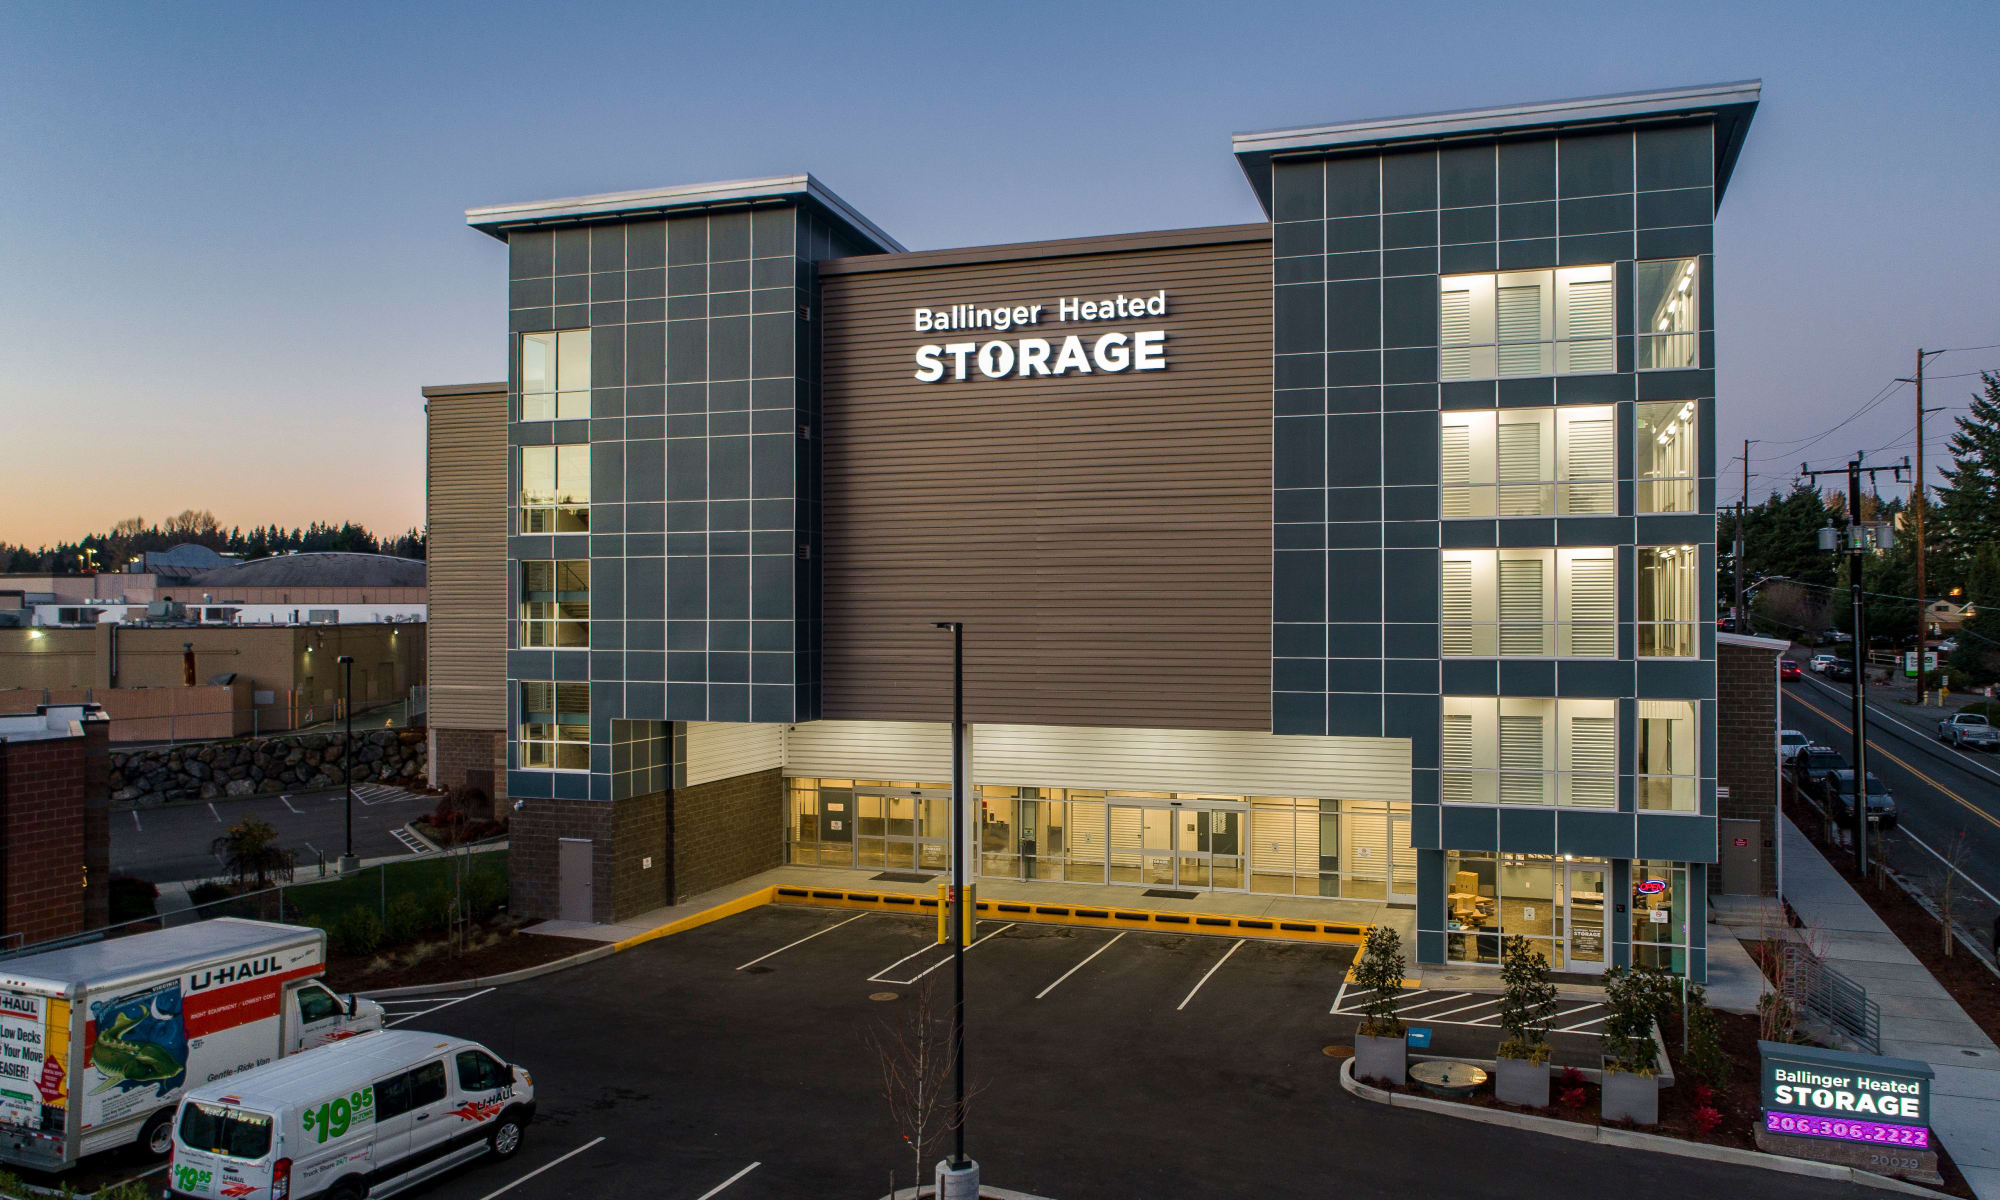 The front of Ballinger Heated Storage in Shoreline, Washington